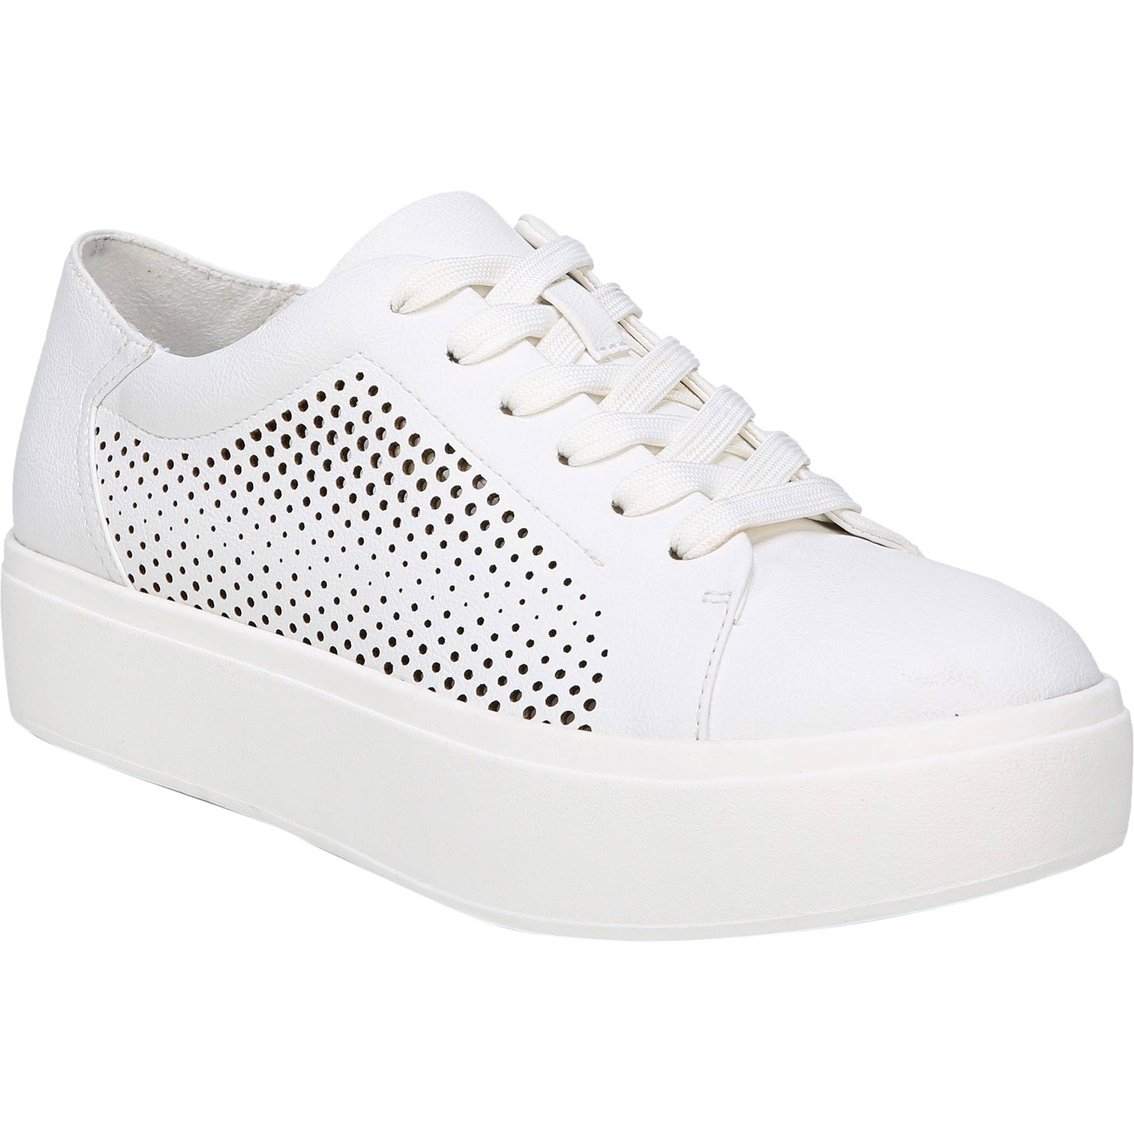 8d2e33be8994 Dr. Scholl s Women s Kinney Lace Up Sneakers